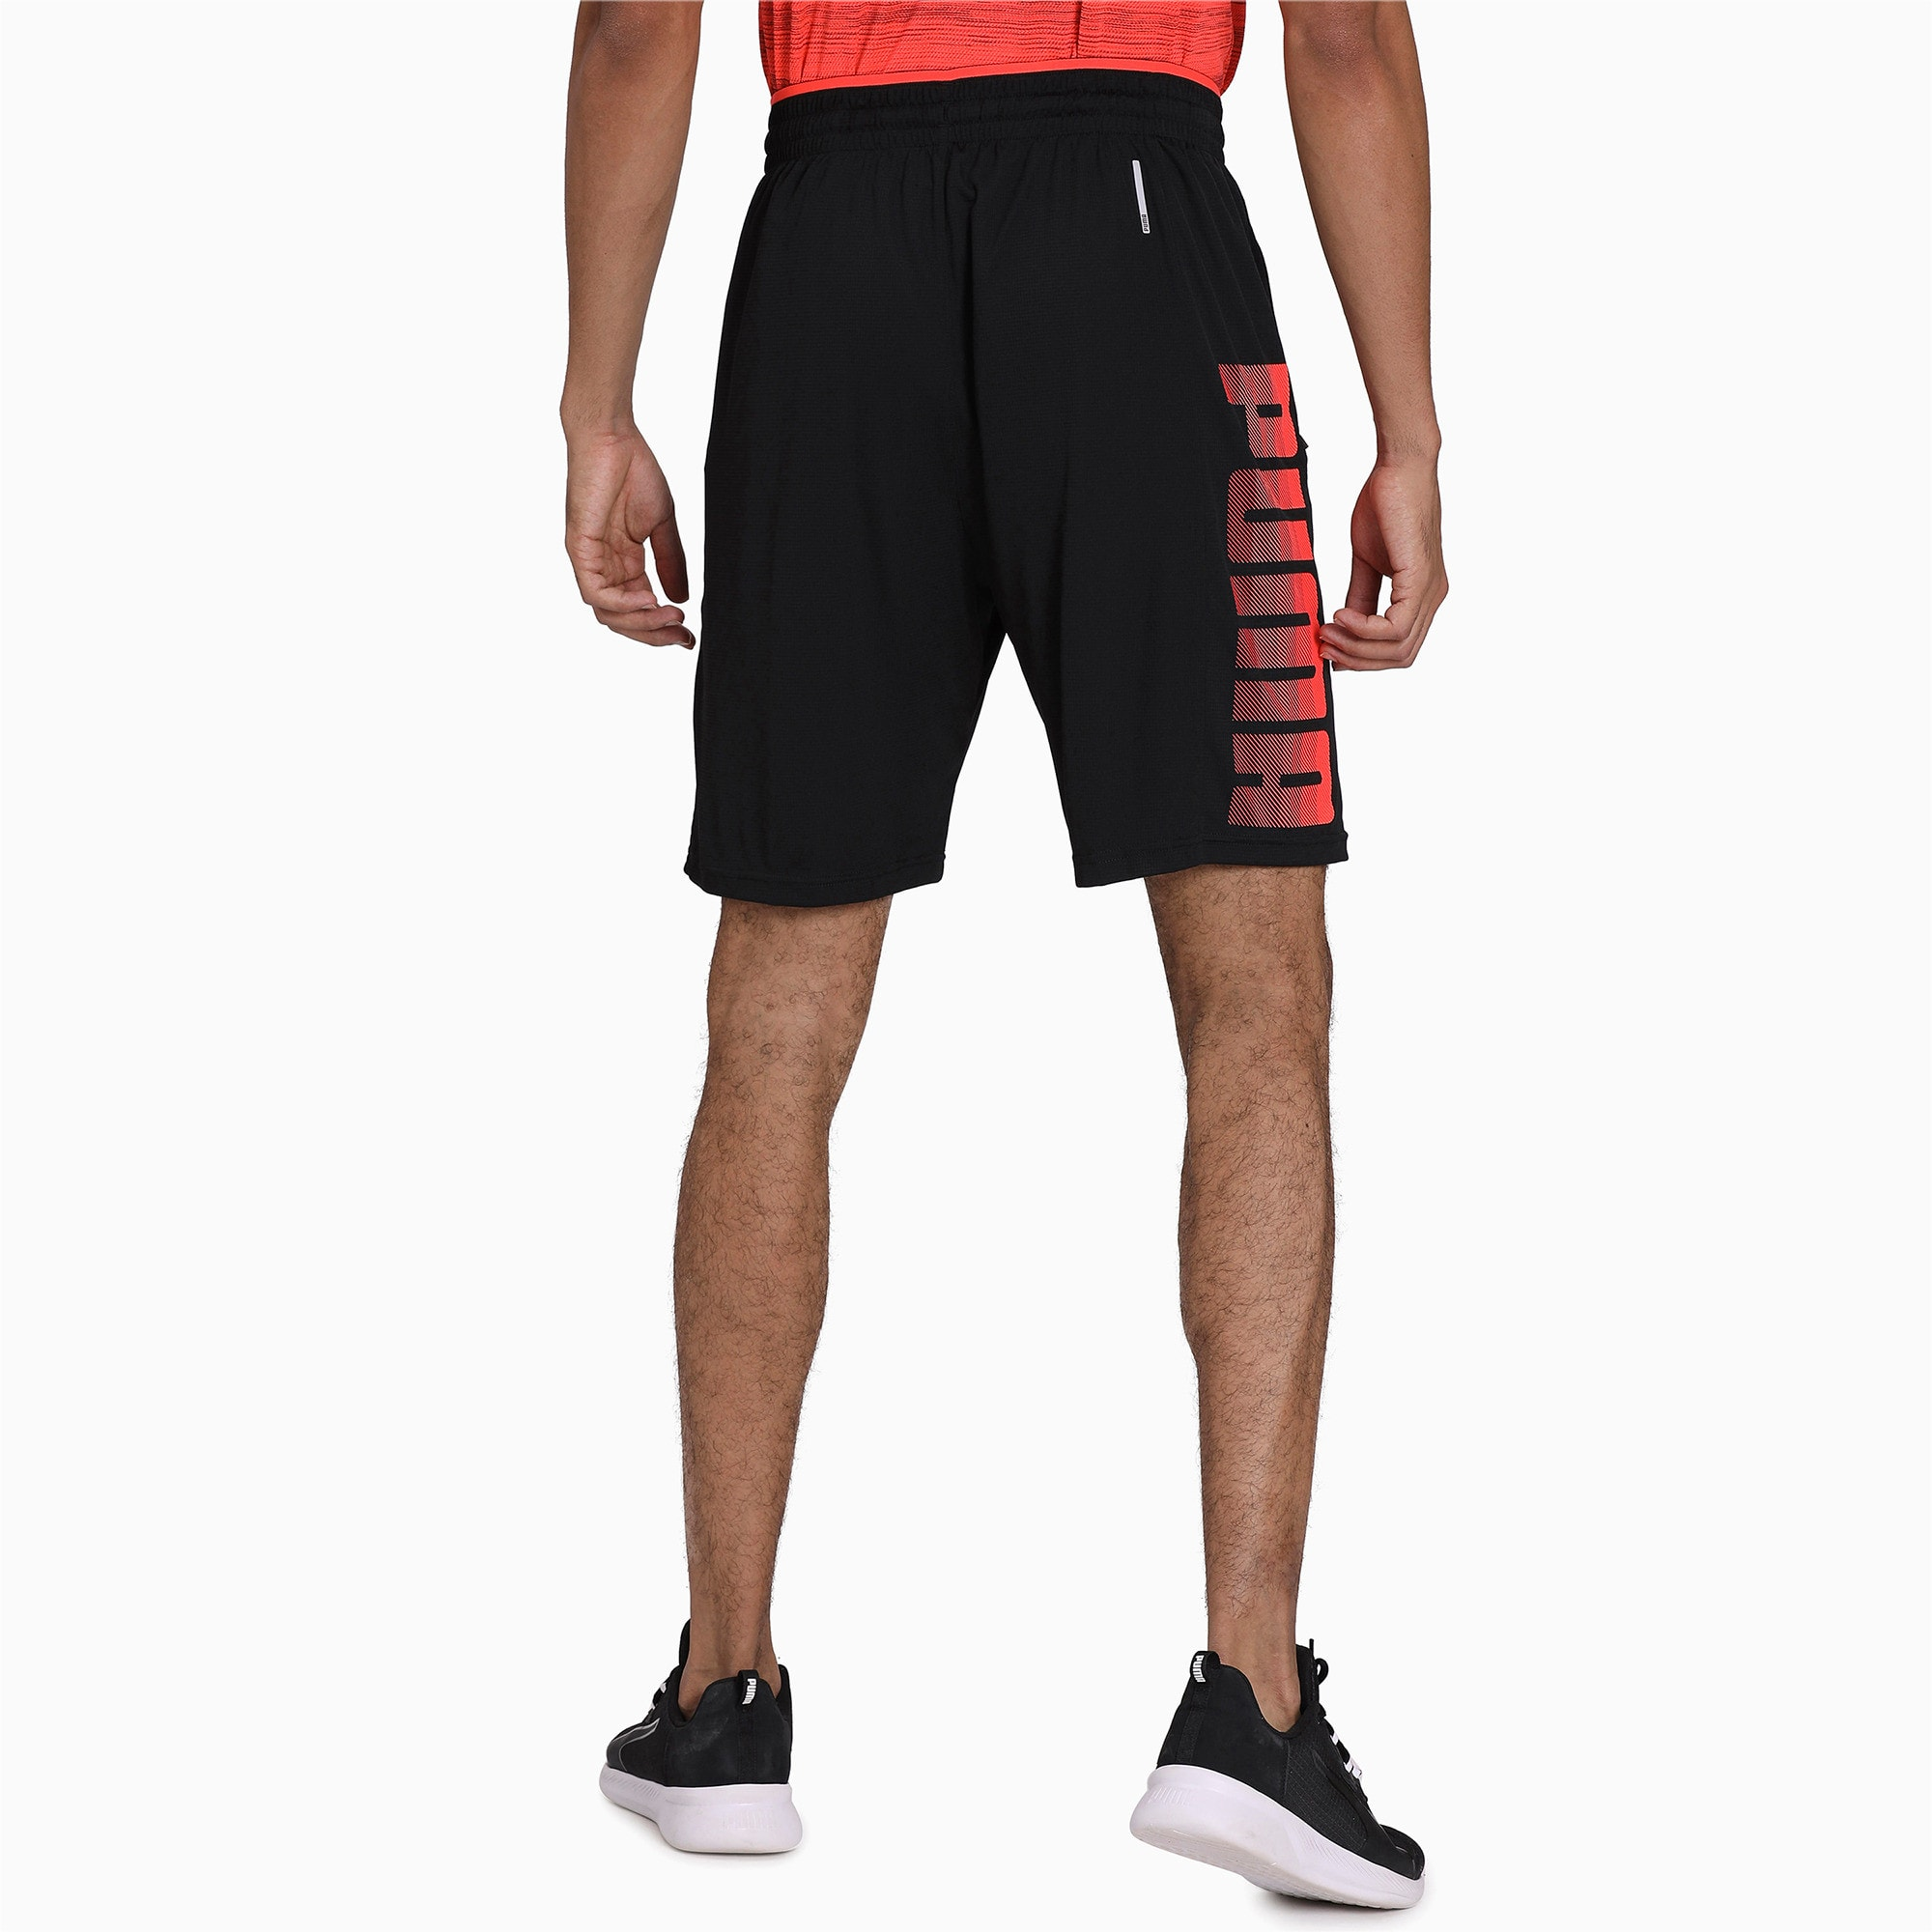 Thumbnail 2 of Collective Knitted Men's Training Shorts, Puma Black-Nrgy Red, medium-IND